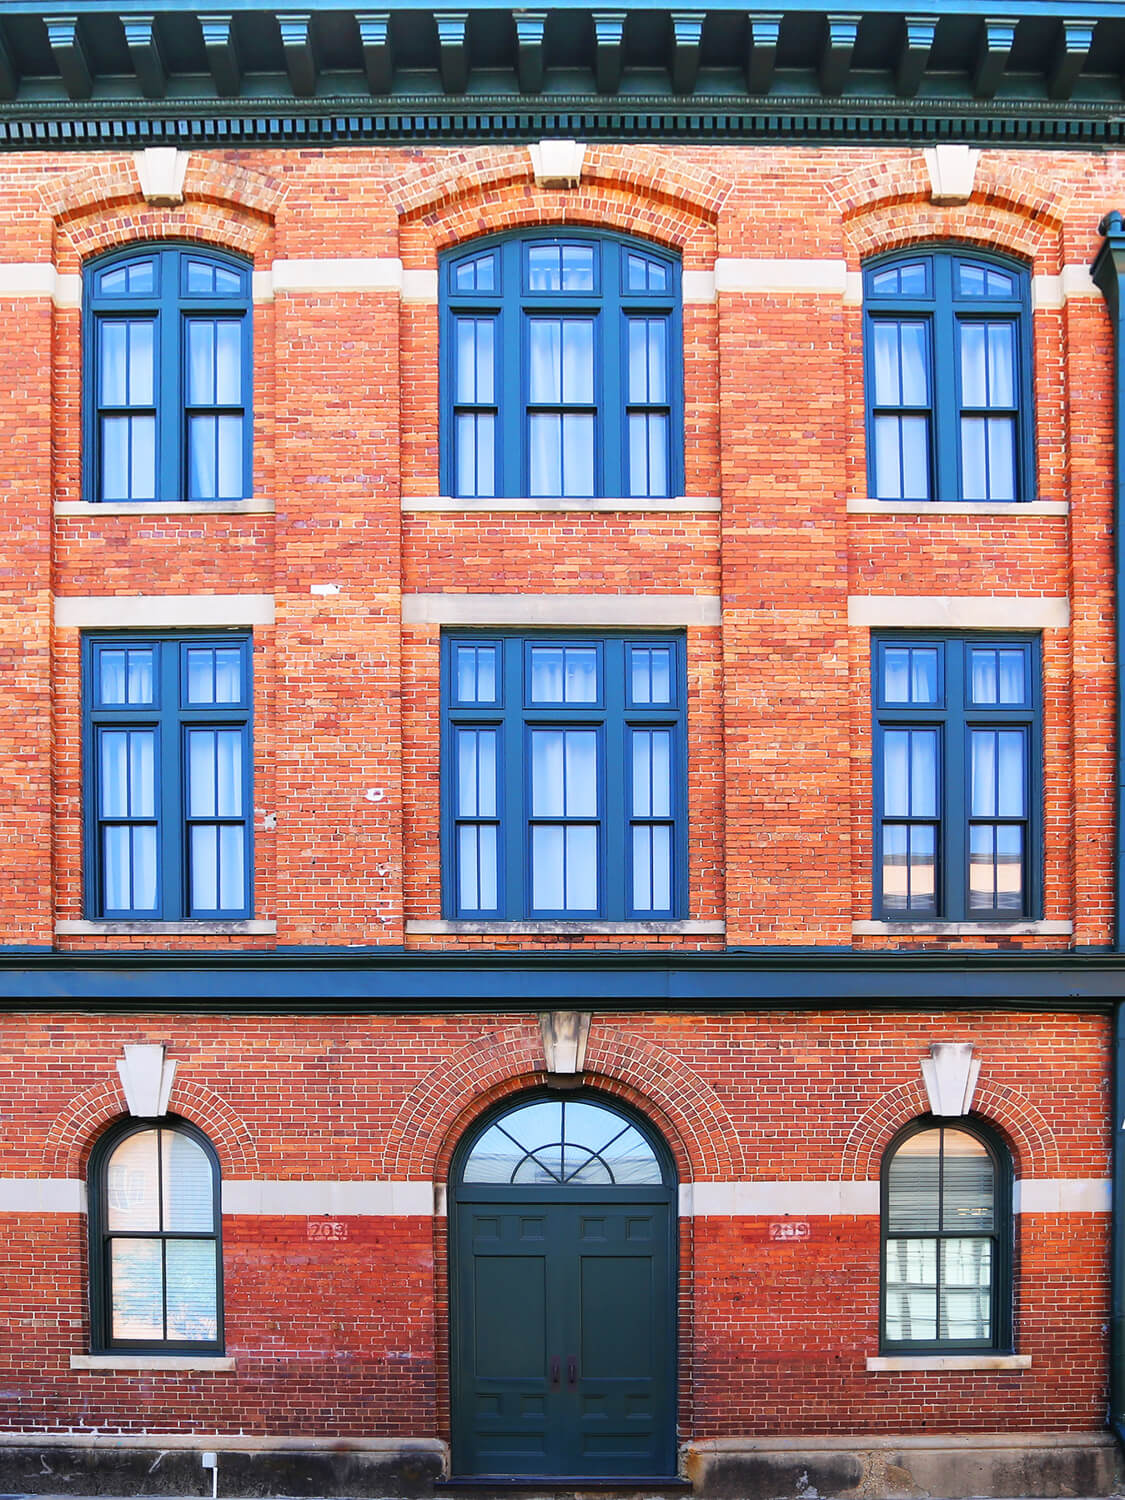 Printing Press Lofts Designed by Foshee Architecture – New Exterior Windows